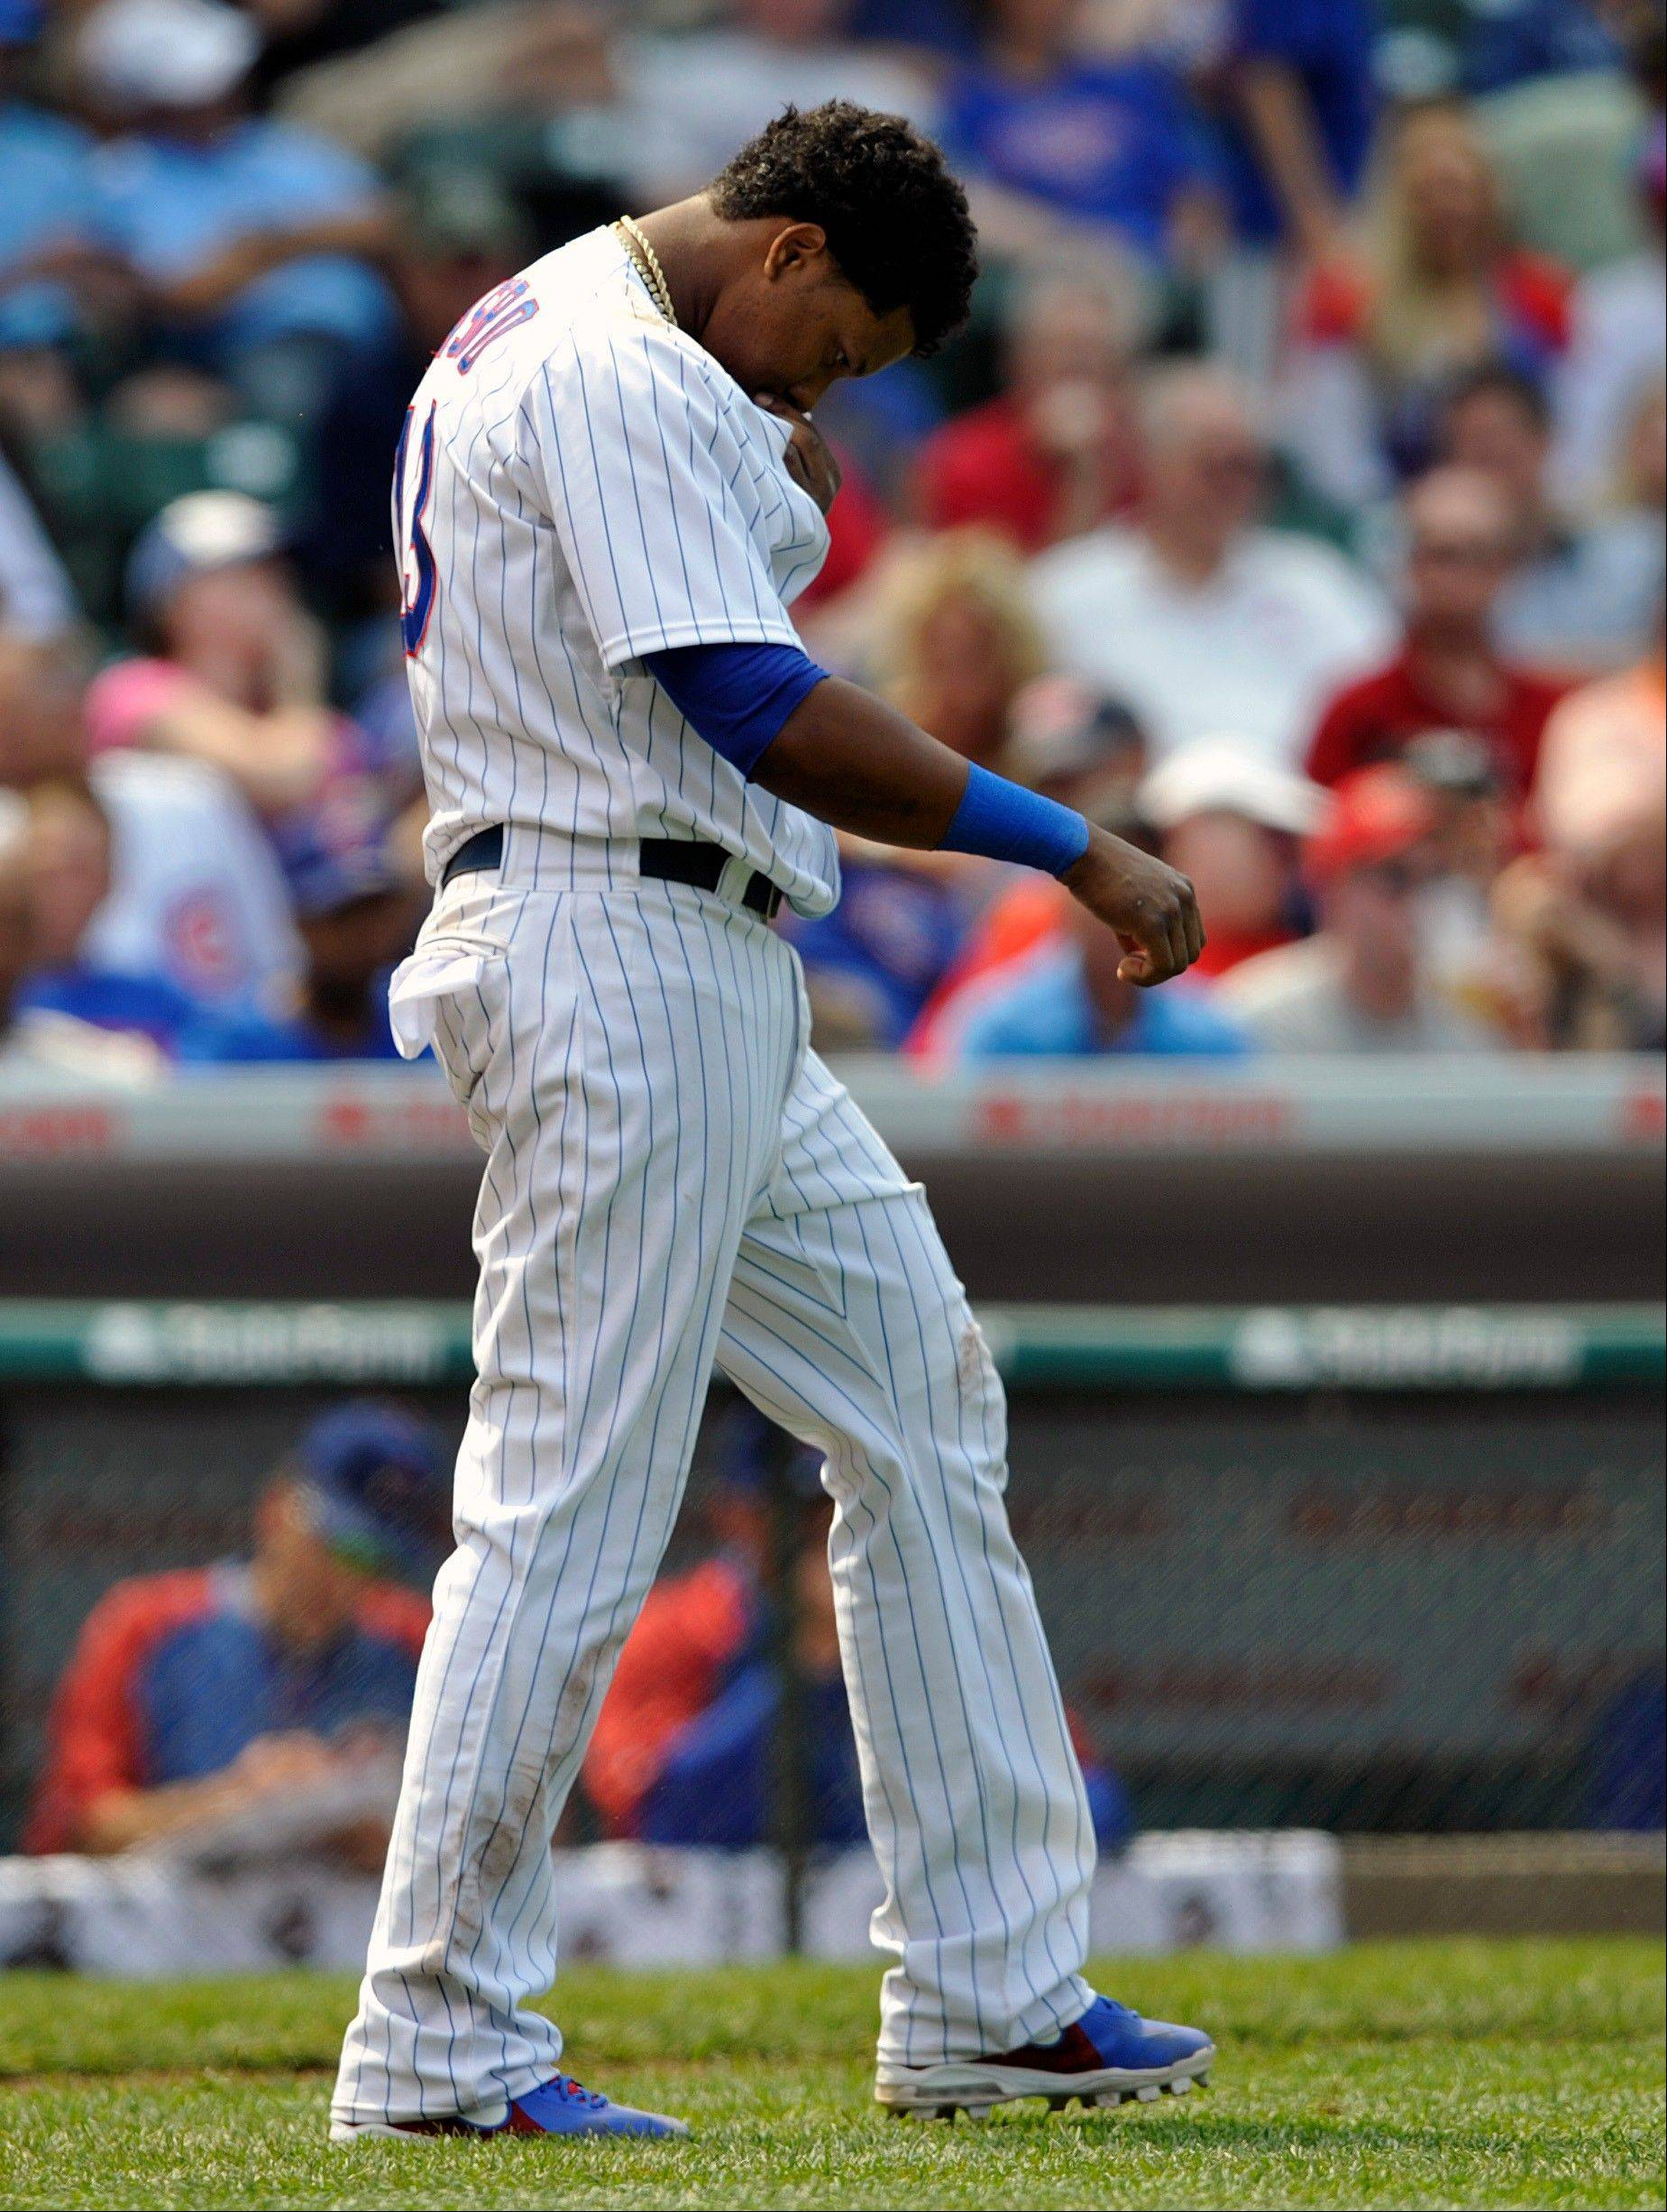 Chicago Cubs' Starlin Castro reacts after striking out against the Cincinnati Reds during the seventh inning of a baseball game on Wednesday, June 12, 2013, in Chicago. (AP Photo/Jim Prisching)